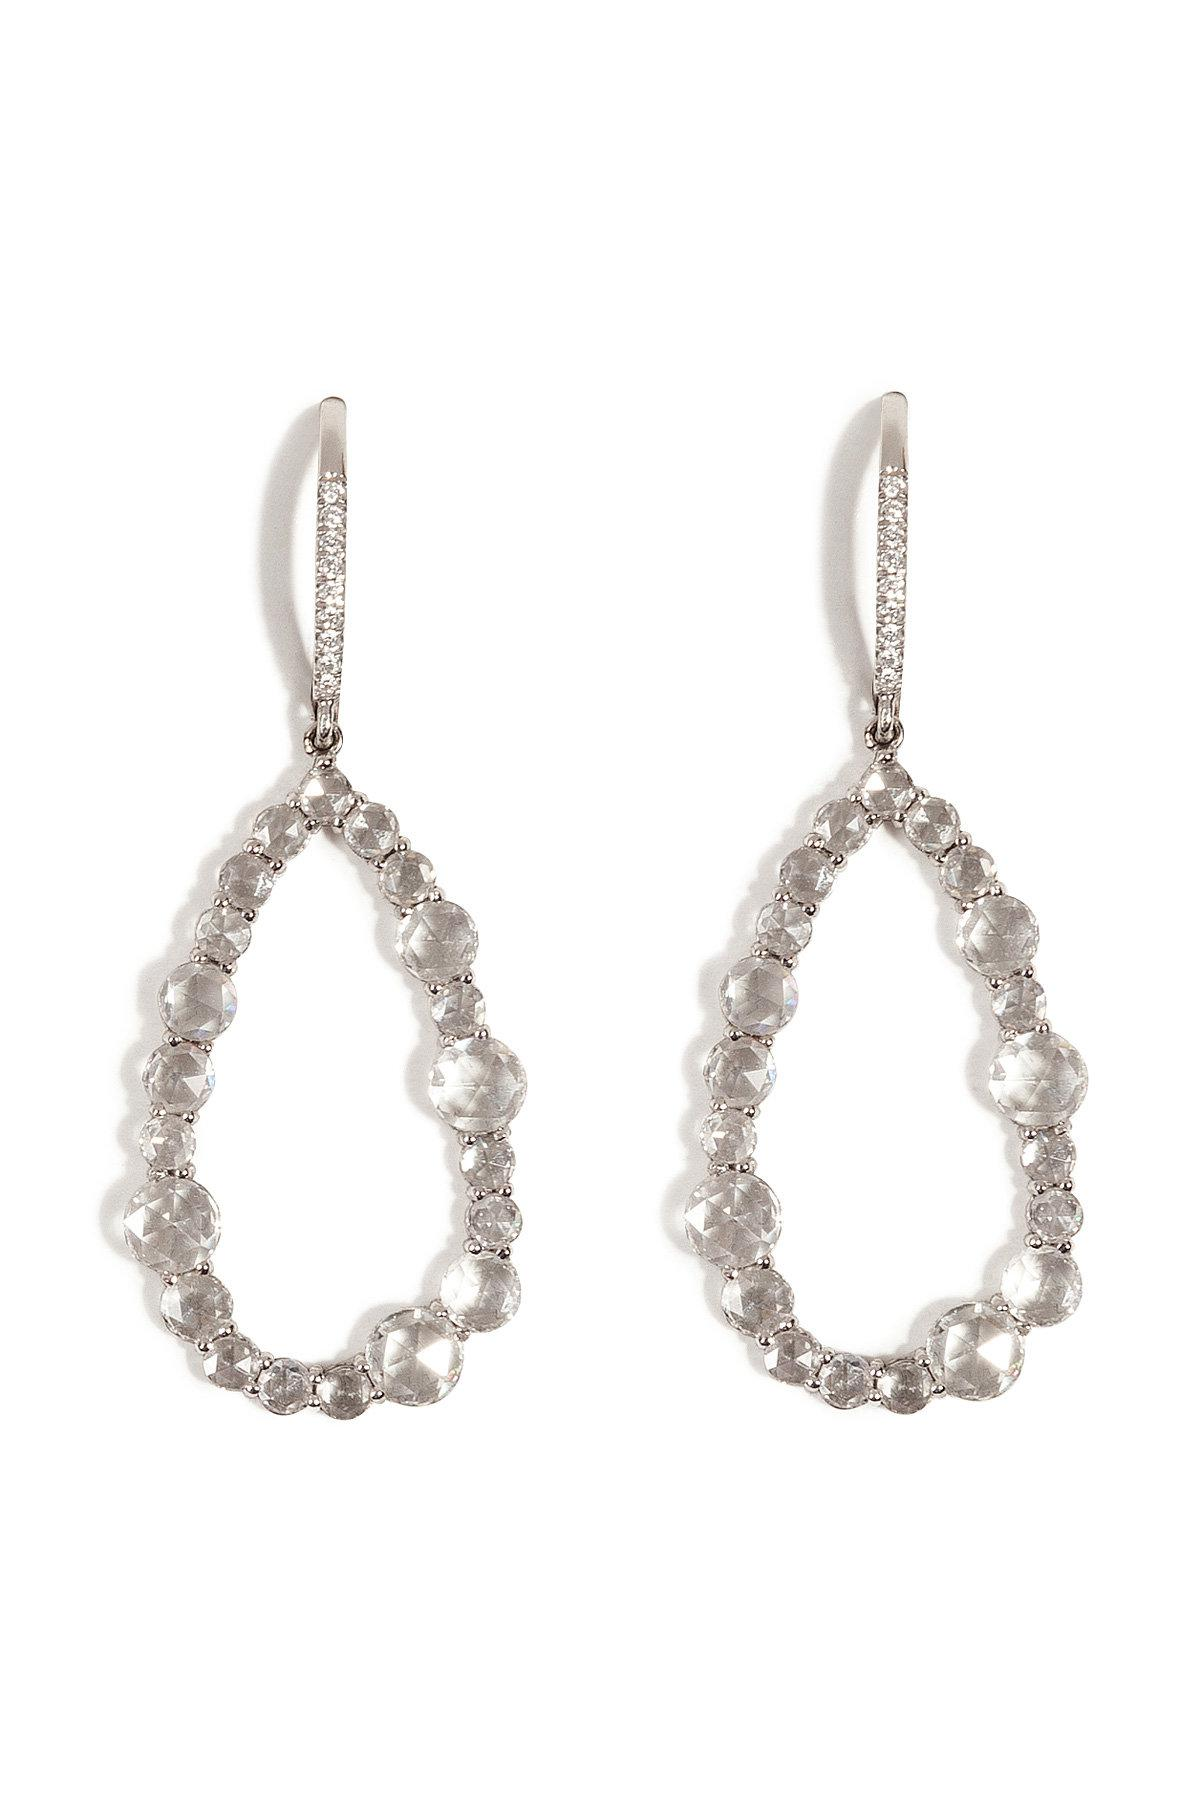 Lyst susan foster 14k white gold chandelier earrings with diamonds gallery aloadofball Images